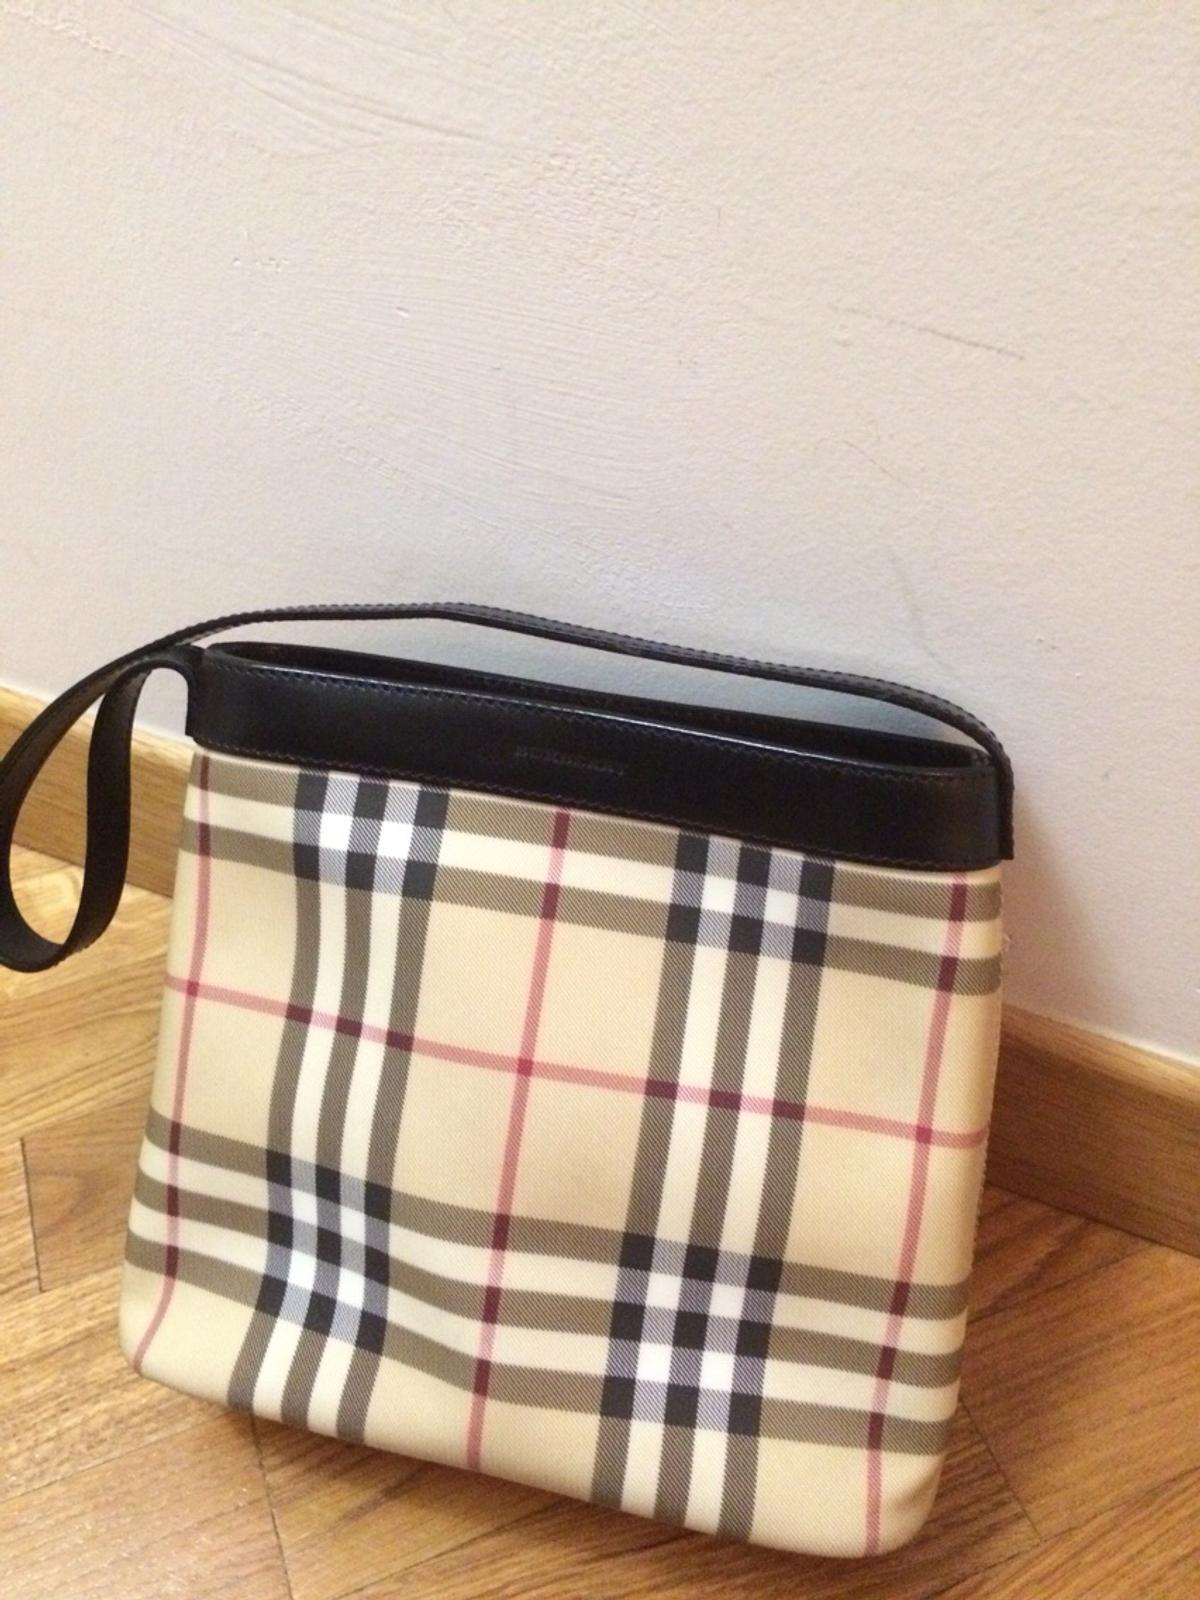 0a303ac8d4 Borsa burberry originale in 00166 Roma for €50.00 for sale - Shpock